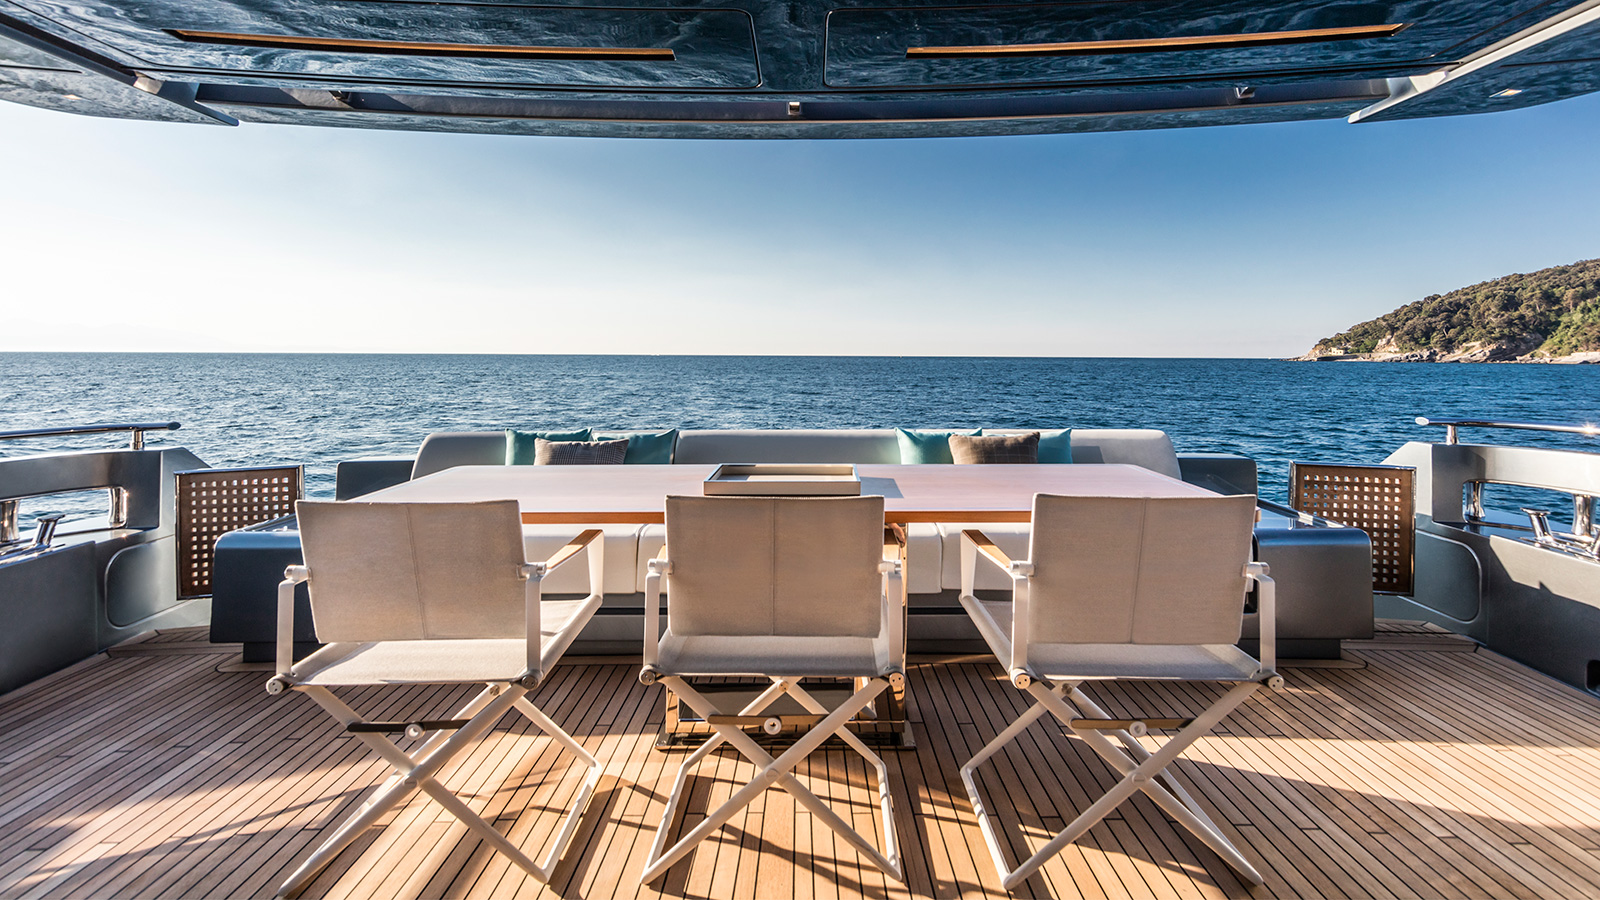 the-aft-deck-of-the-riva-100-corsaro-yacht-wild-one-credit-alberto-cocchi